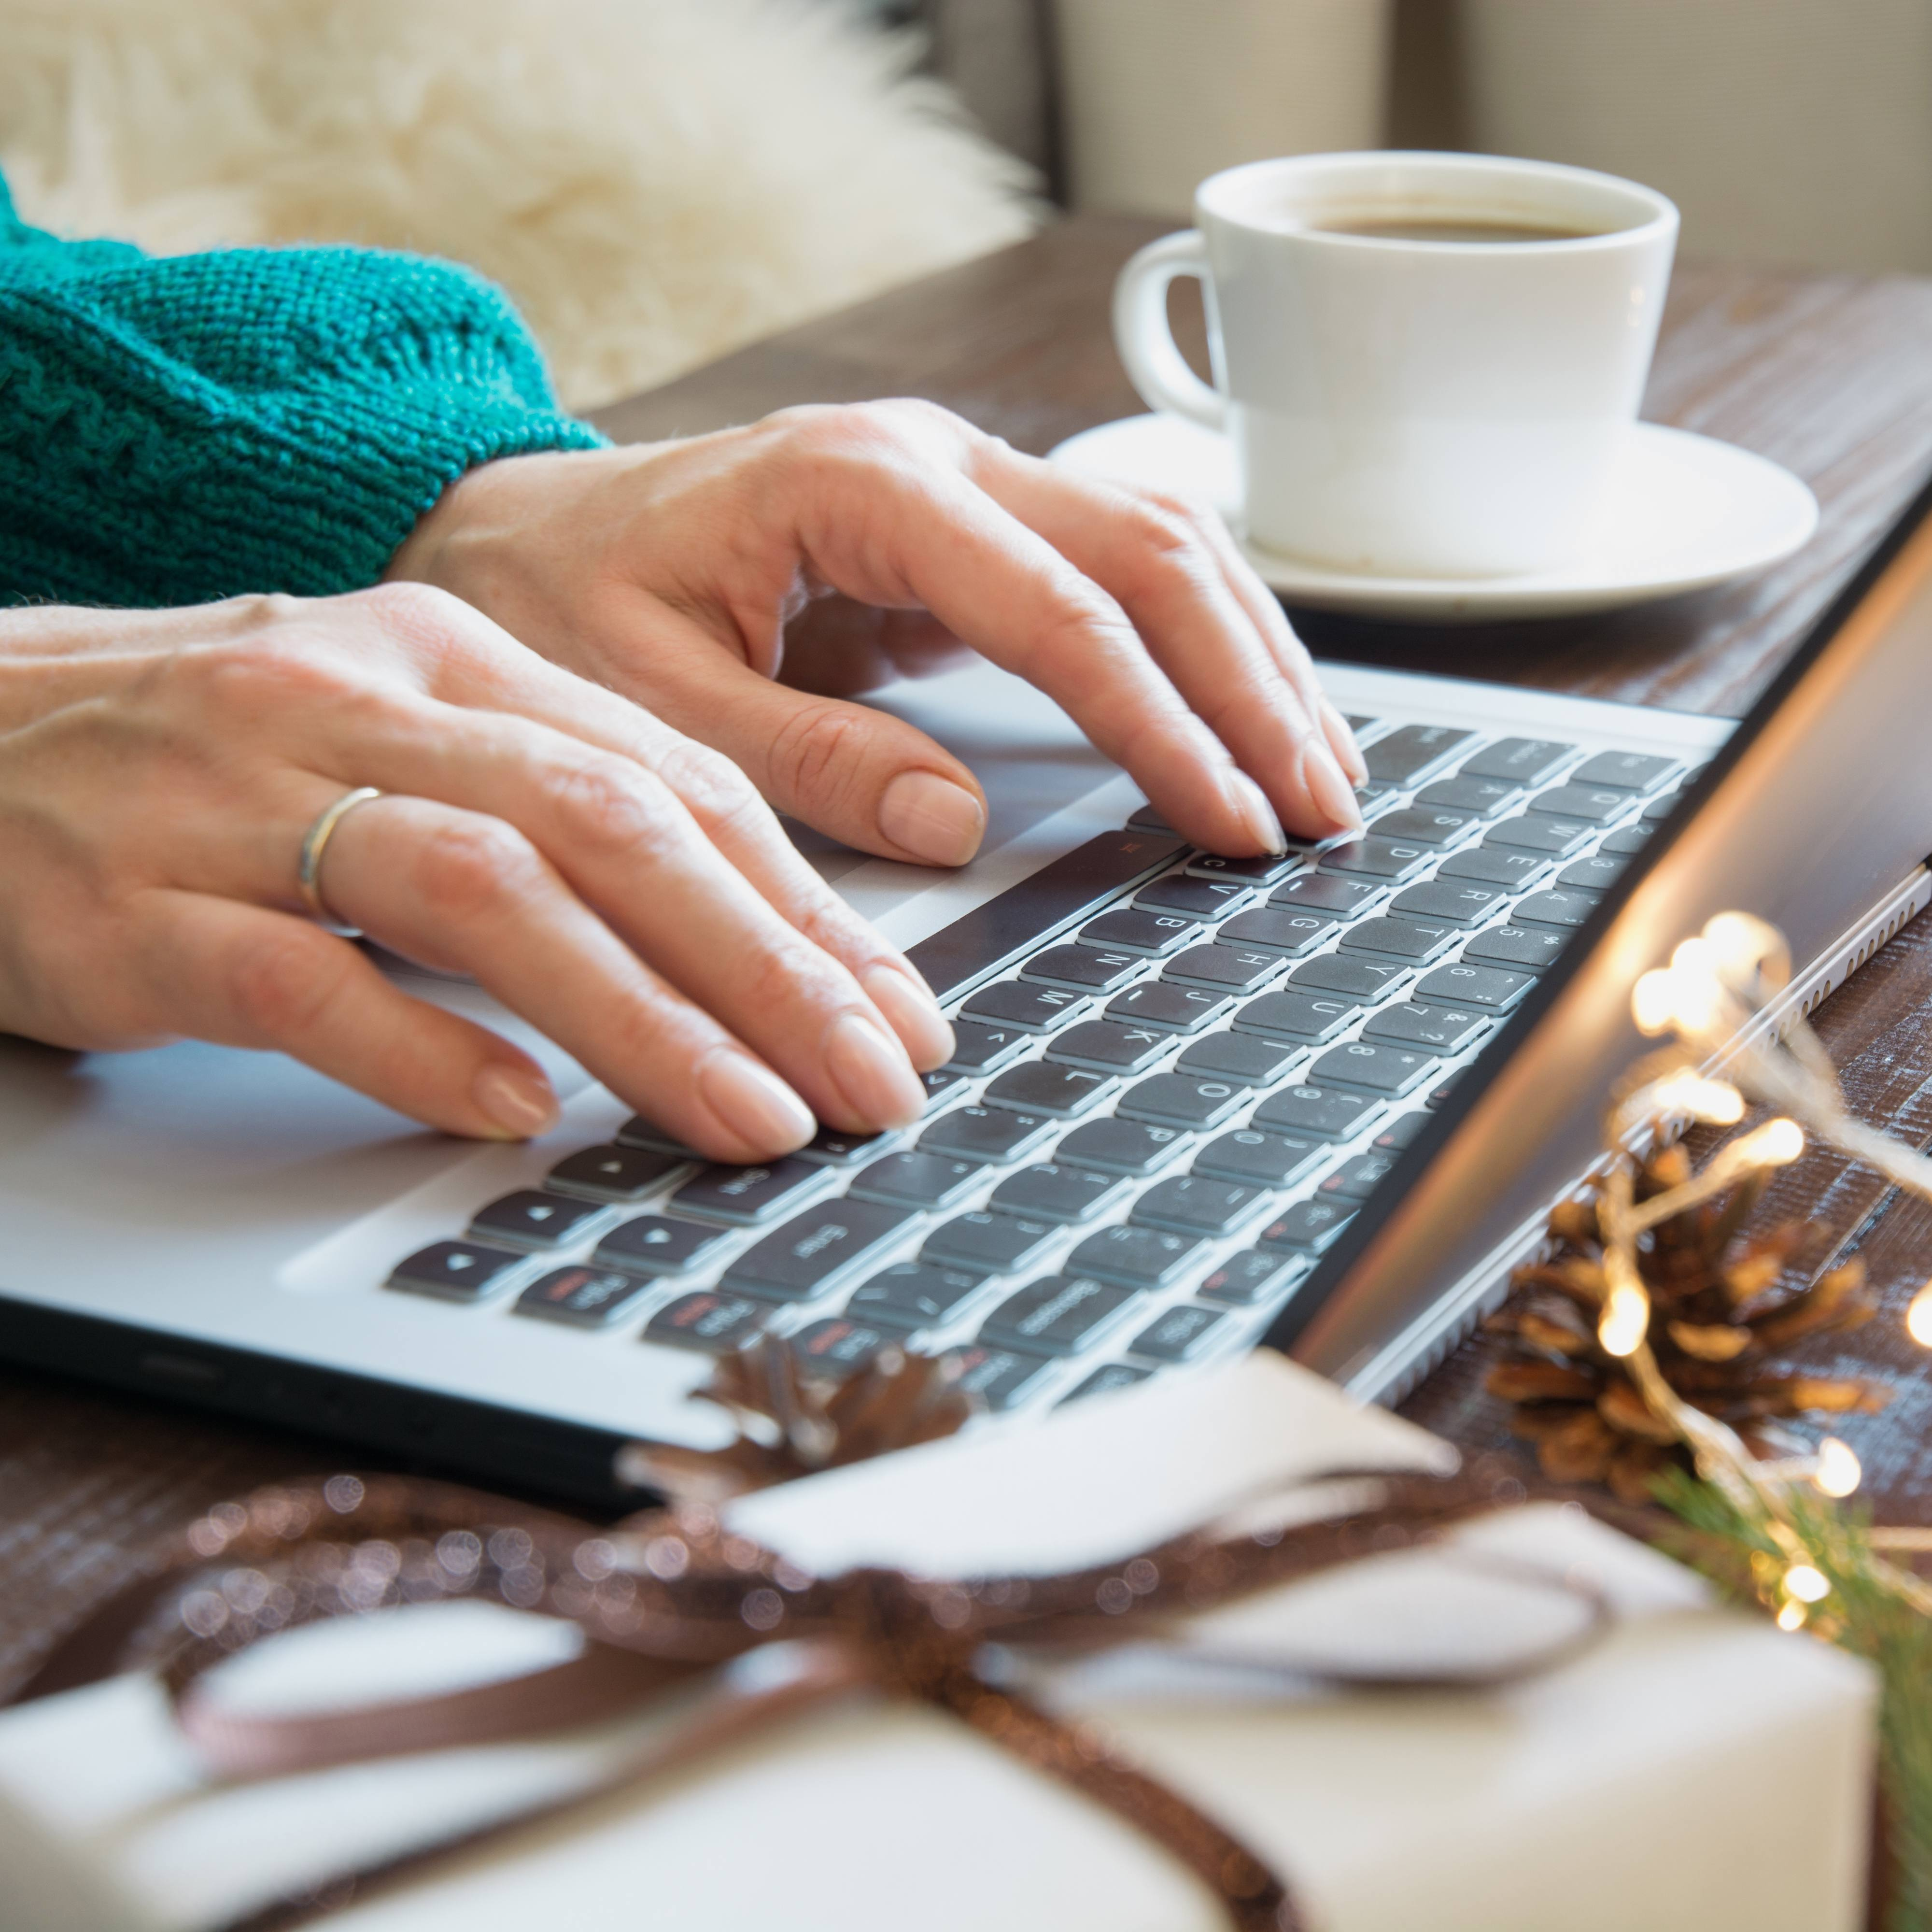 closeup of a white woman's hands typing on a computer laptop with a cup of coffee nearby and a small Christmas tree with tinsel on the table